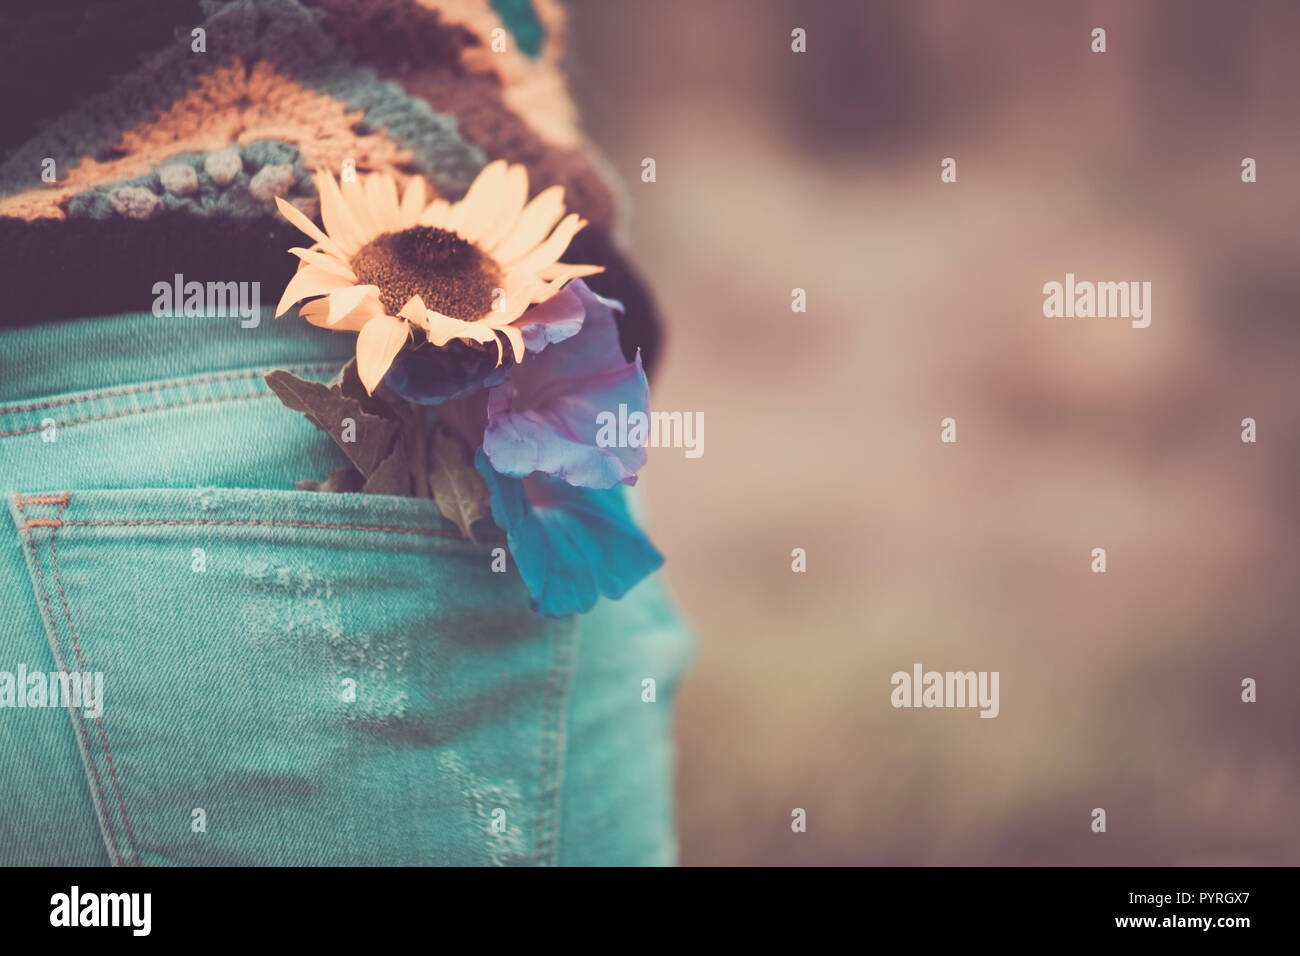 close up with vintage tones and colors of sun flower on the rear pocket of casual woman jeans back. peace and love onceptual image for hippy style and - Stock Image